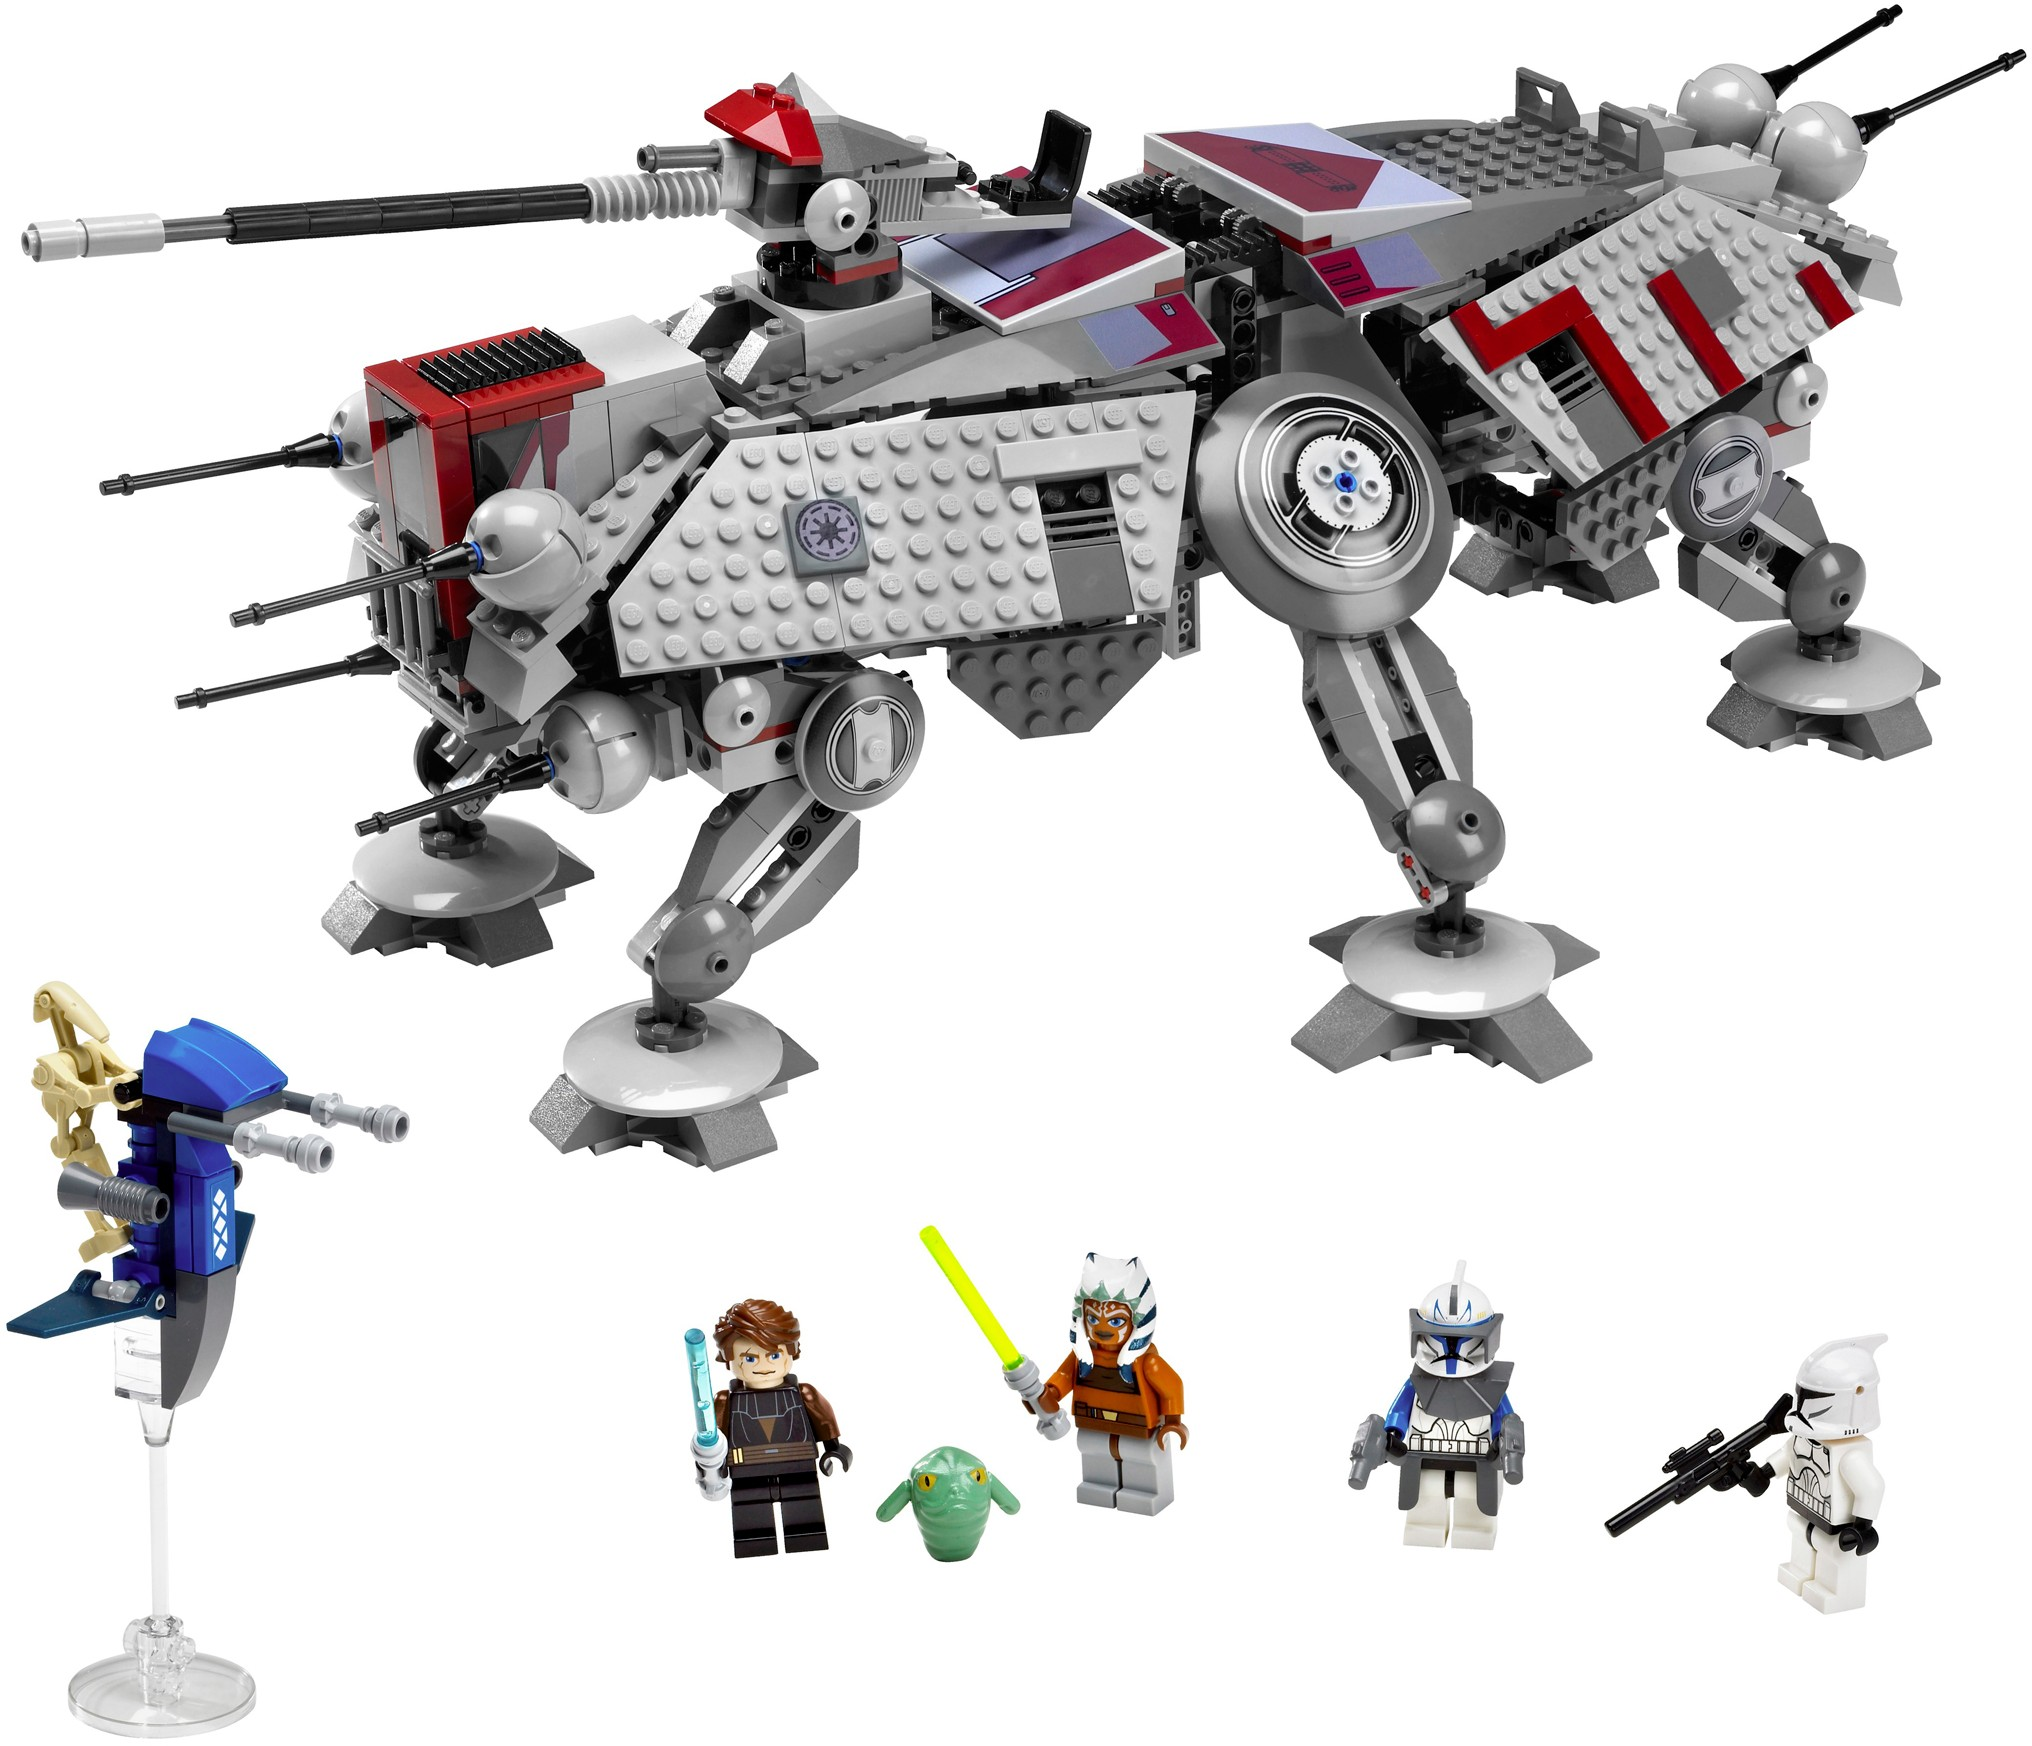 Star Wars  2008  Brickset LEGO set guide and database